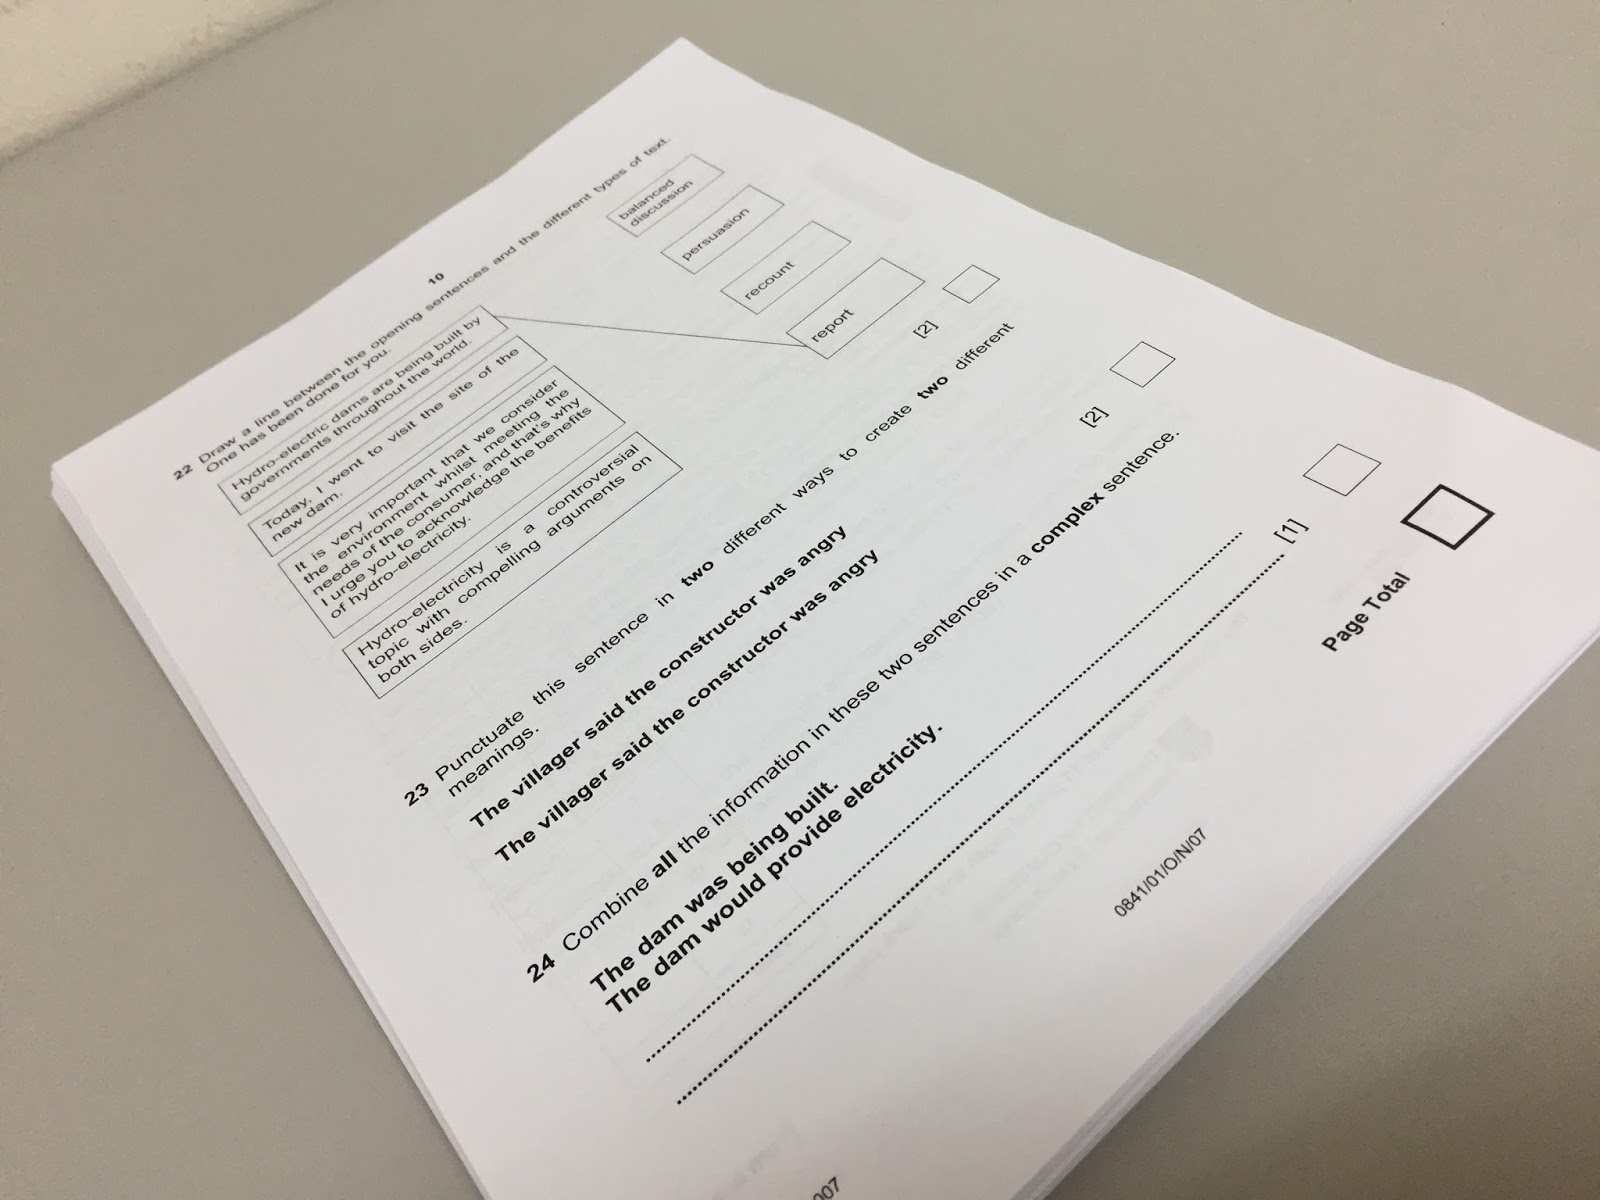 IGCSE Cambridge Year 6 Primary Checkpoint (KS 2) - mr sai mun